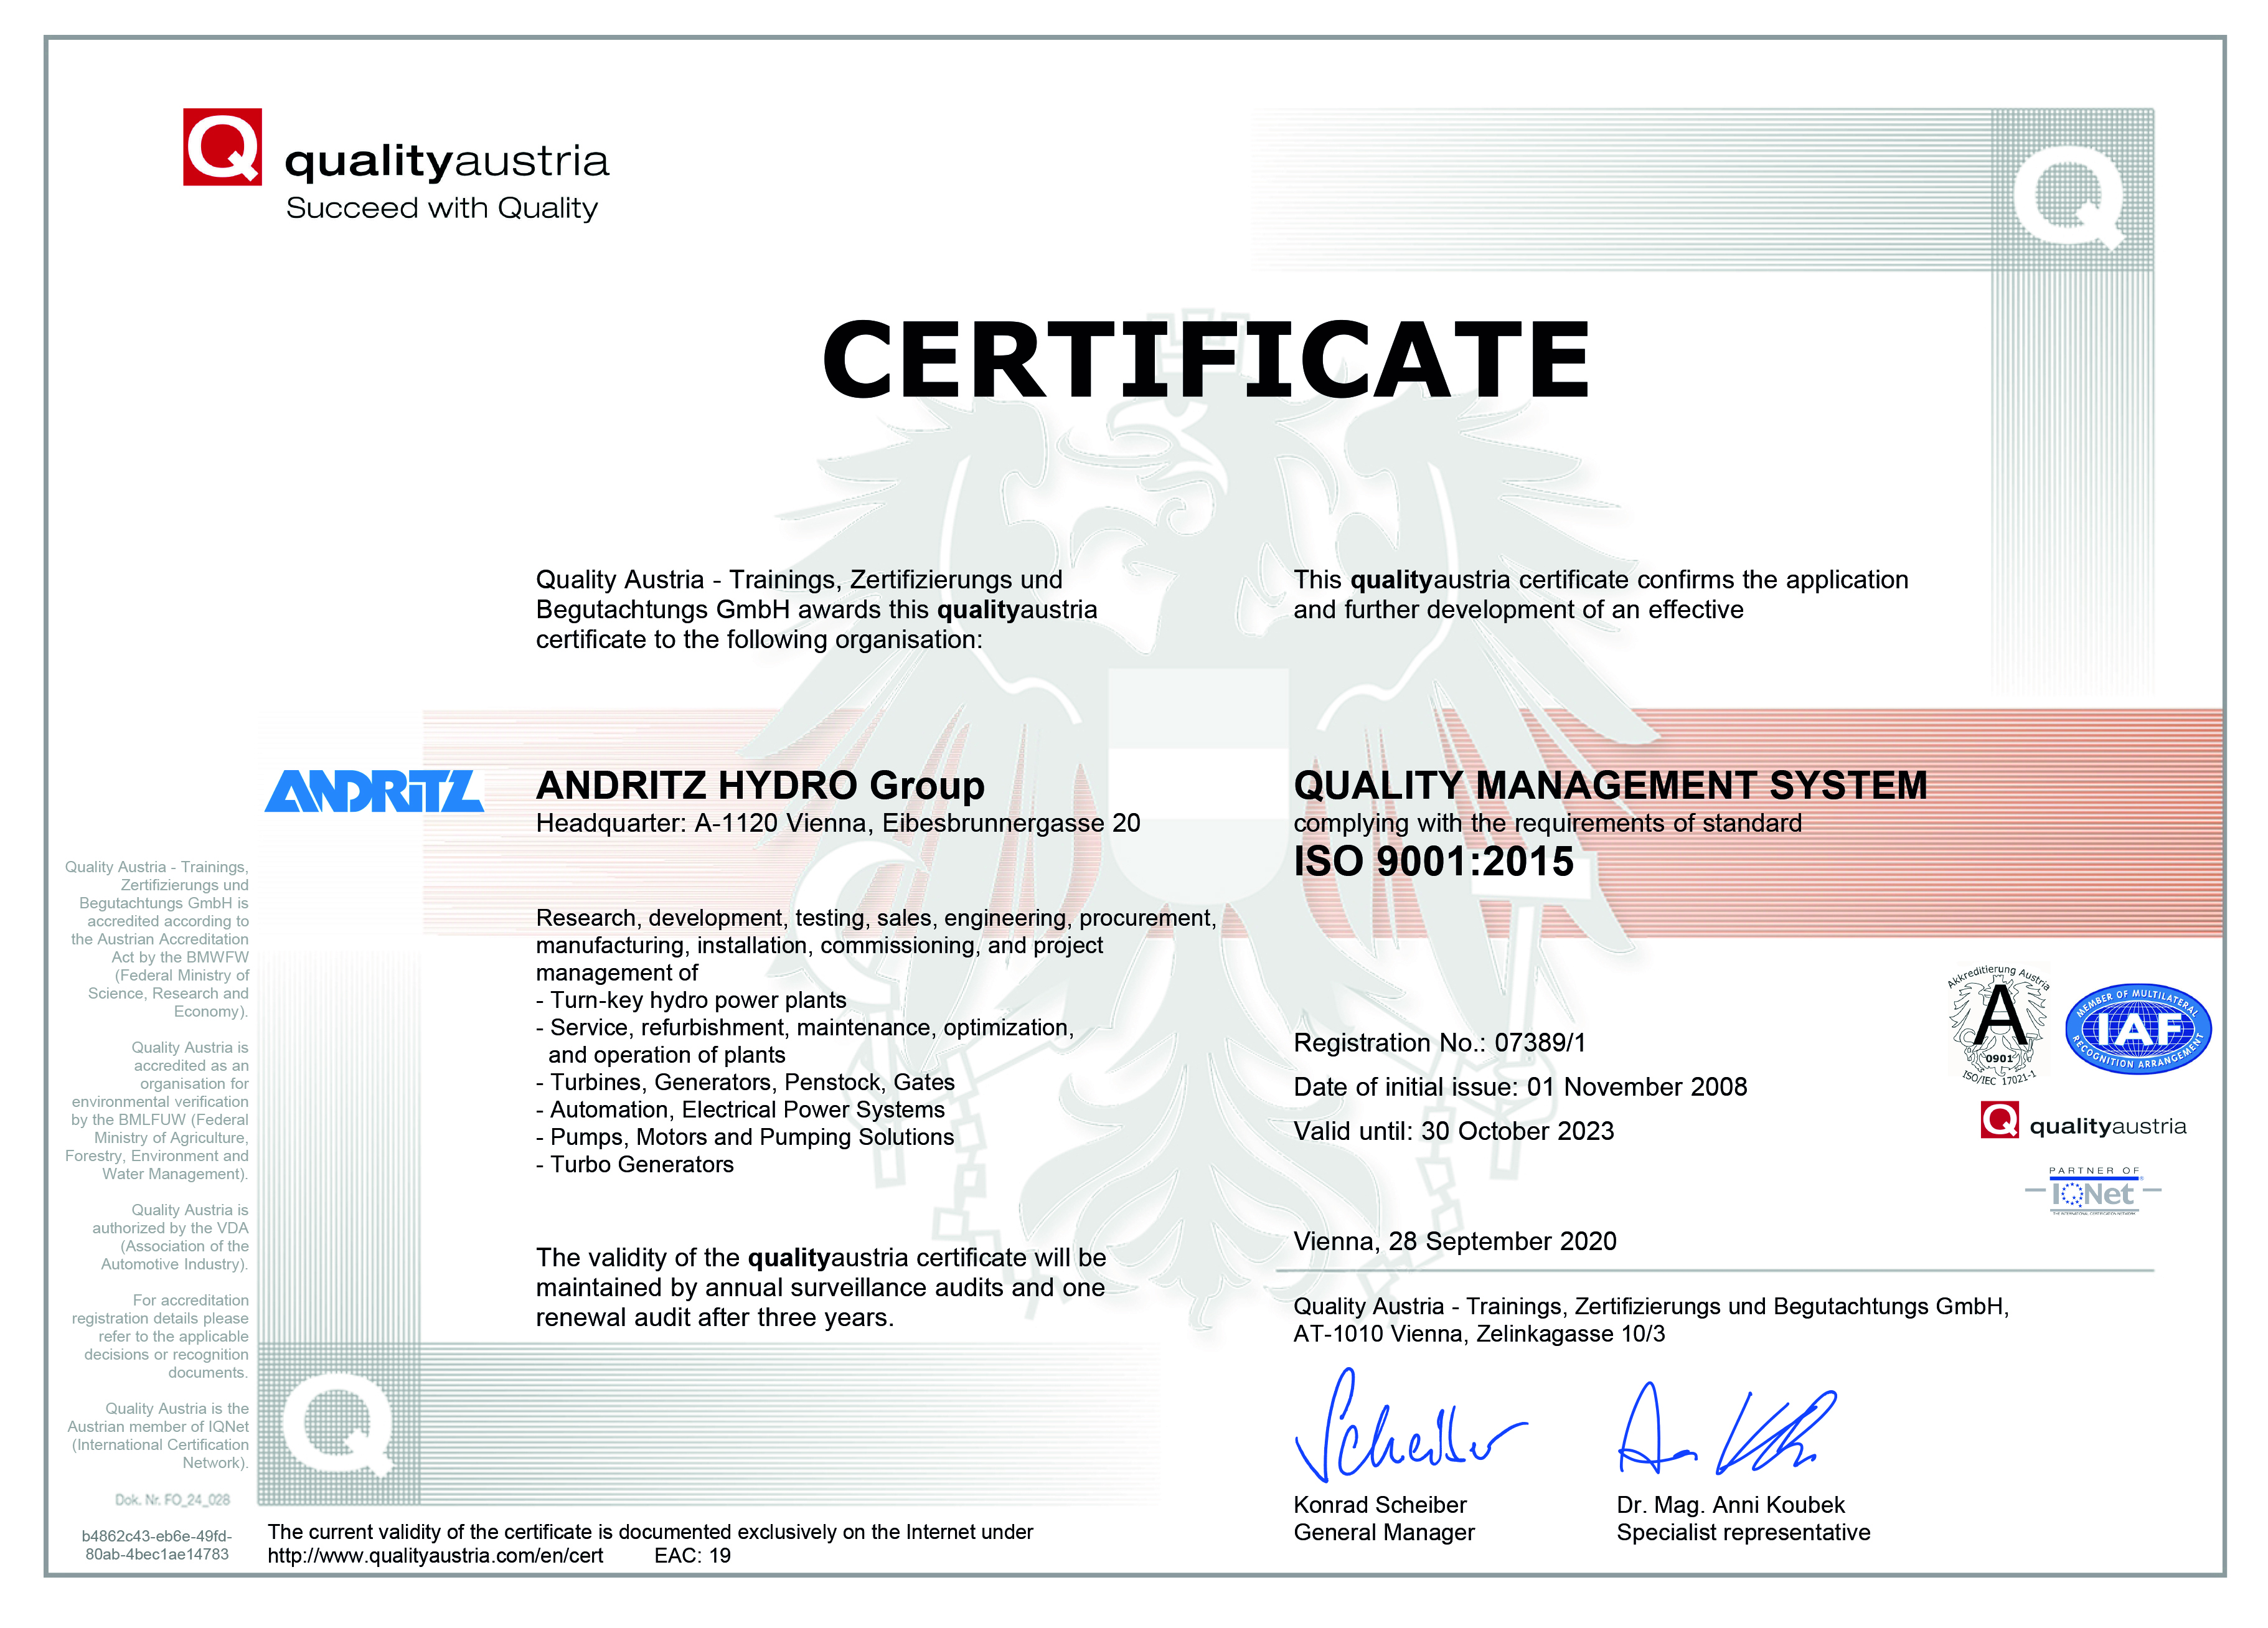 ANDRITZ HYDRO Group ISO 9001 Certificate